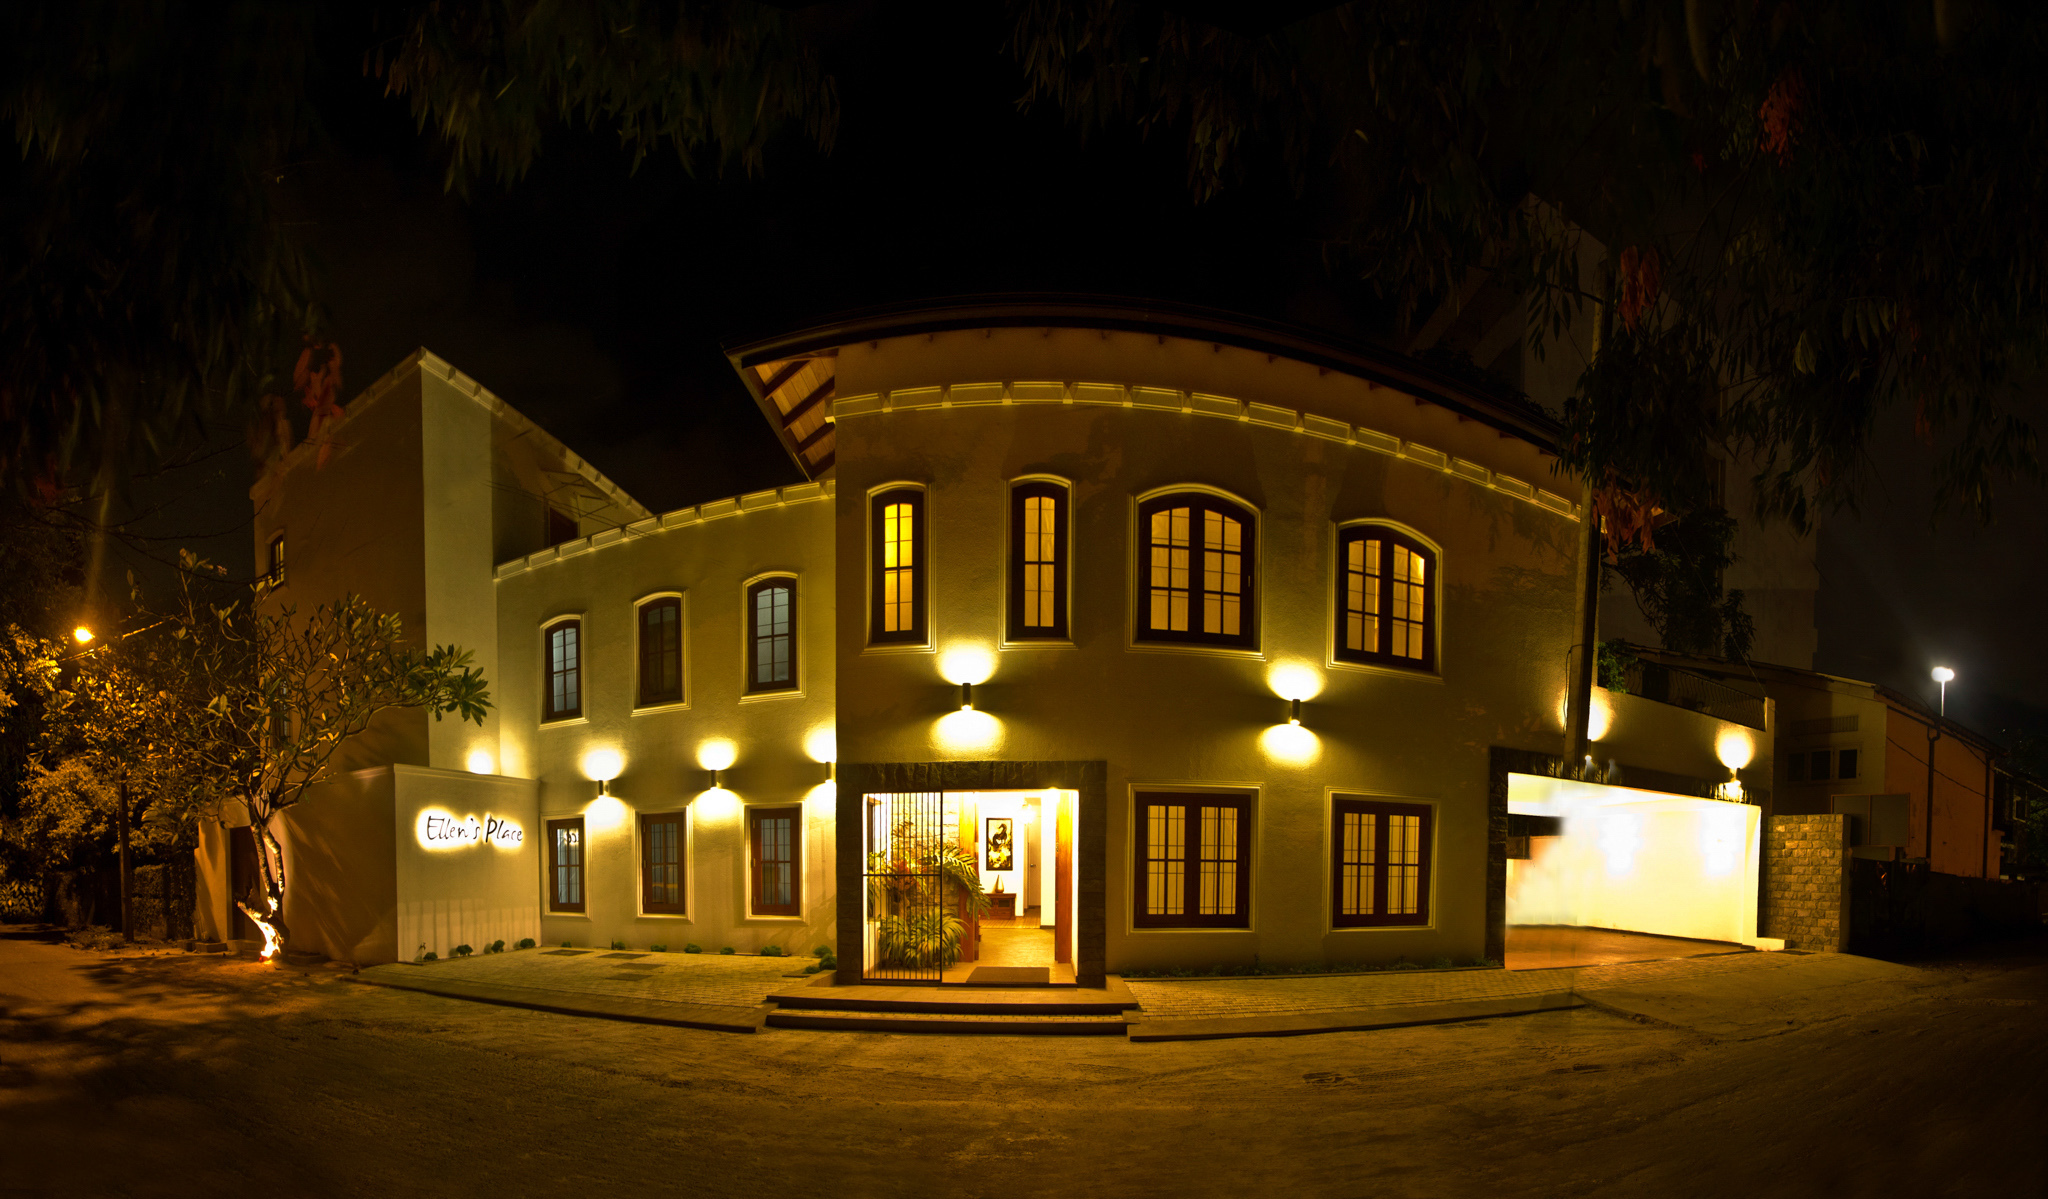 Ellen's Place is a hotel in Colombo